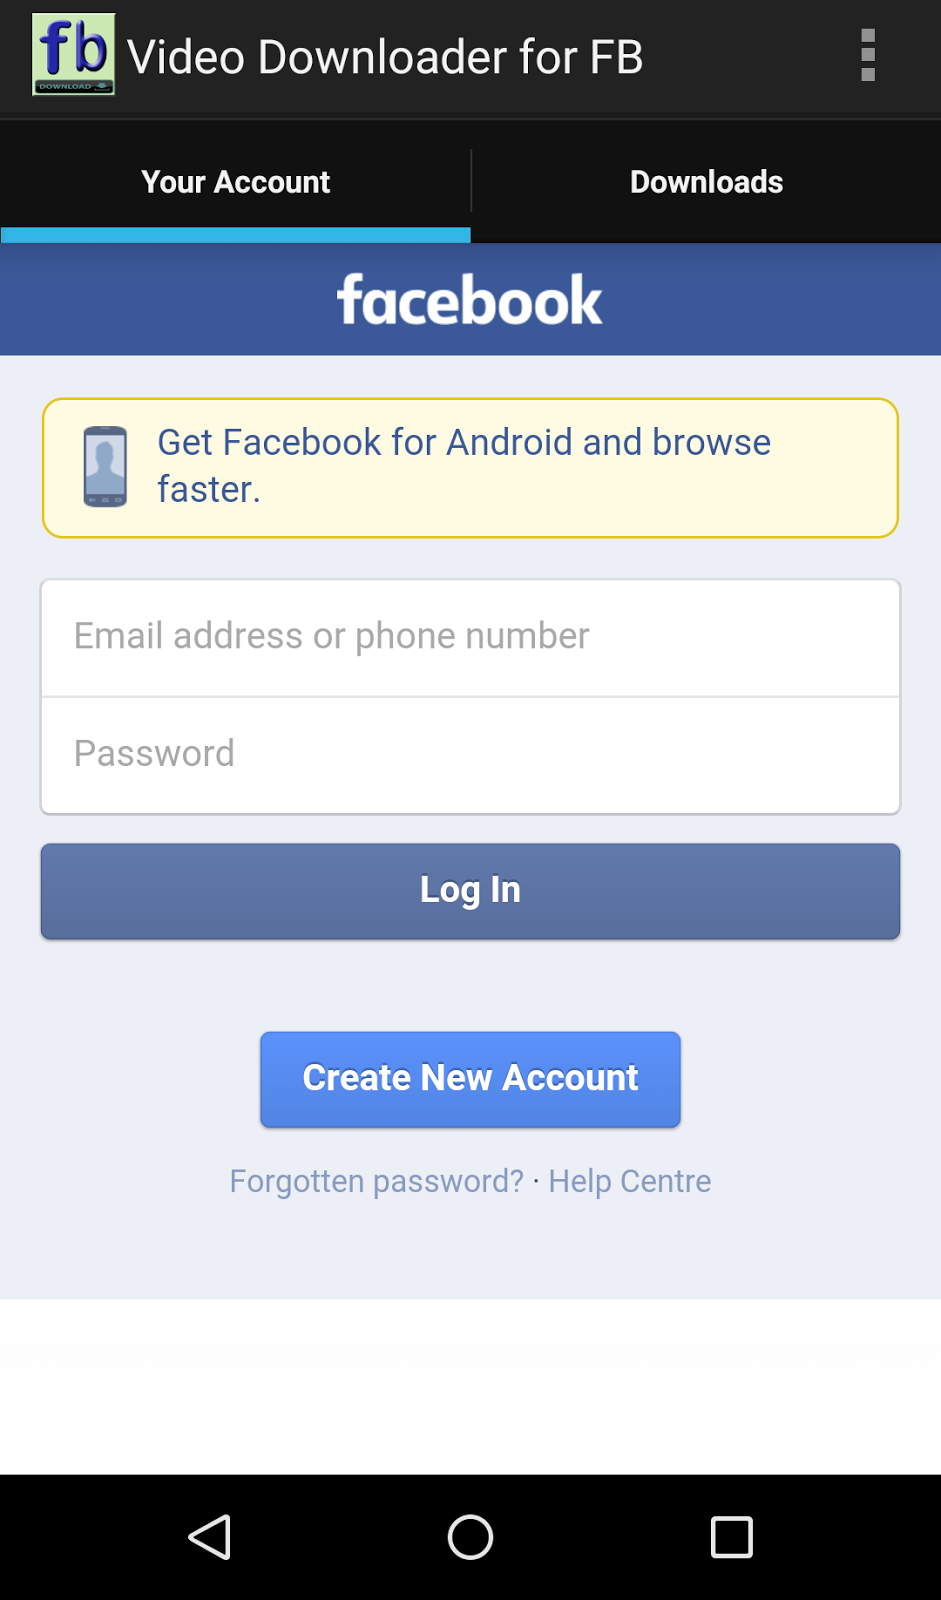 Video Downloader for Facebook - Android App Source Code